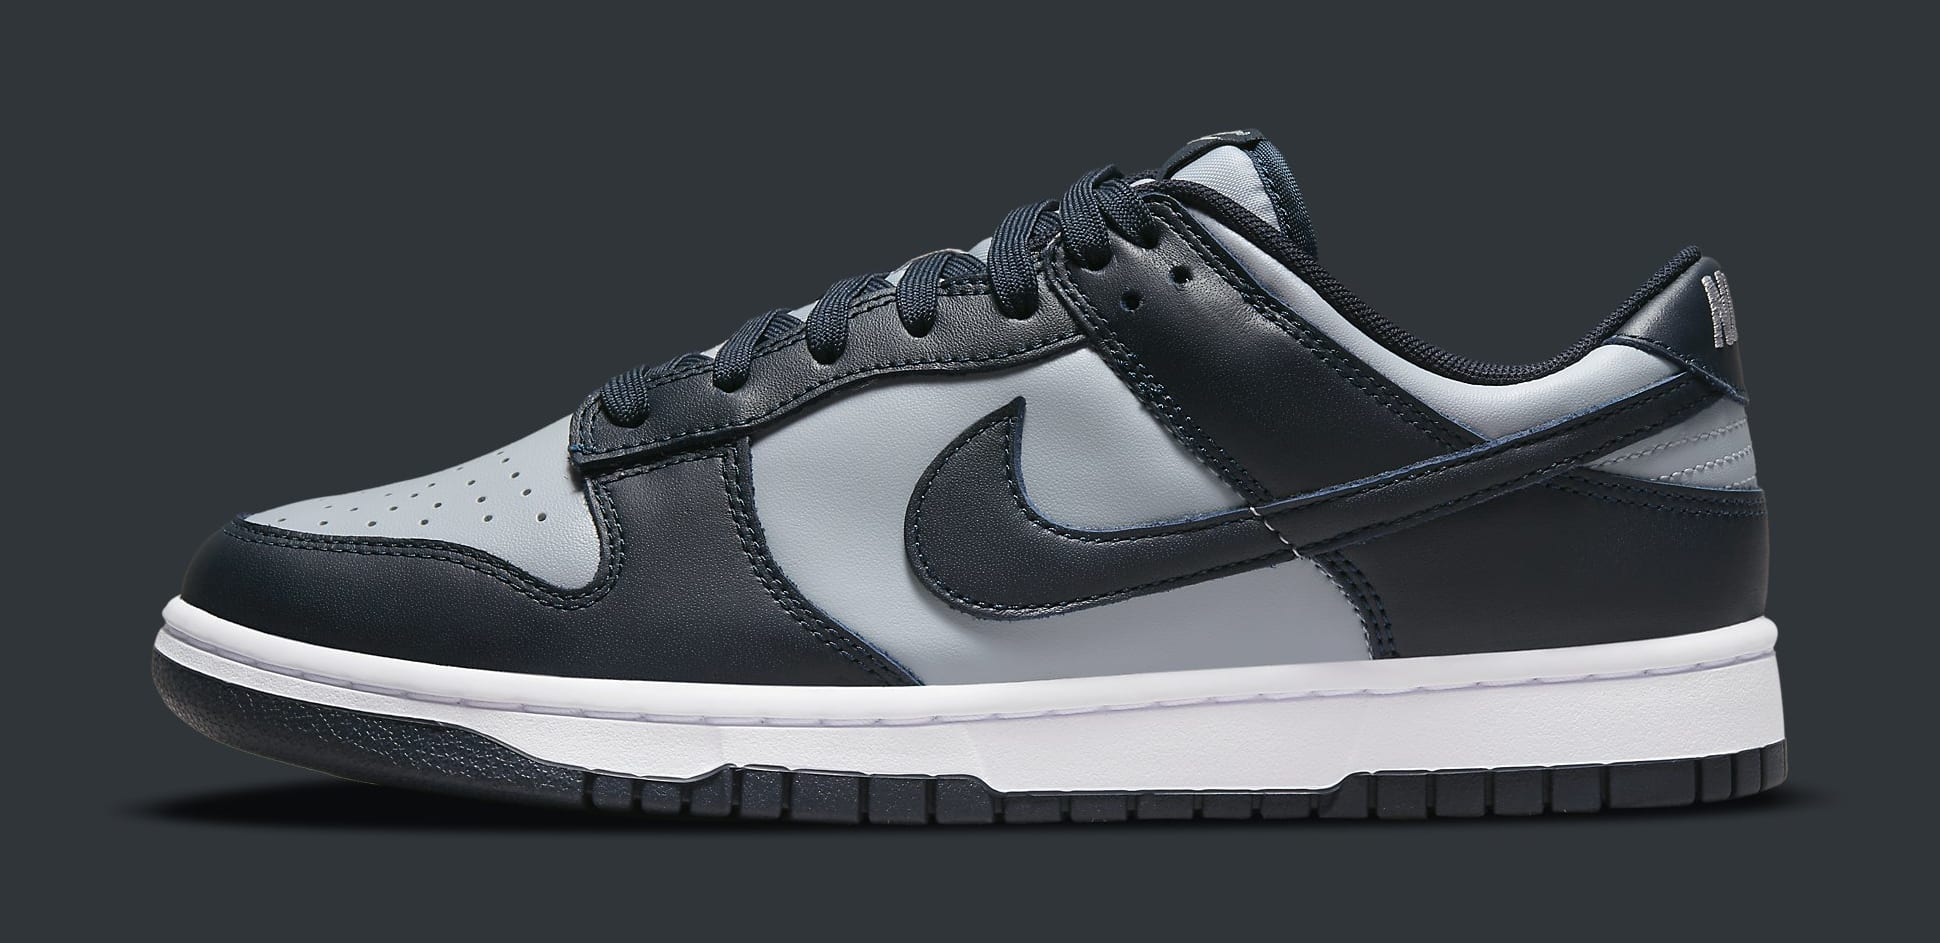 Nike Dunk Low 'Georgetown' DD1391-003 Lateral